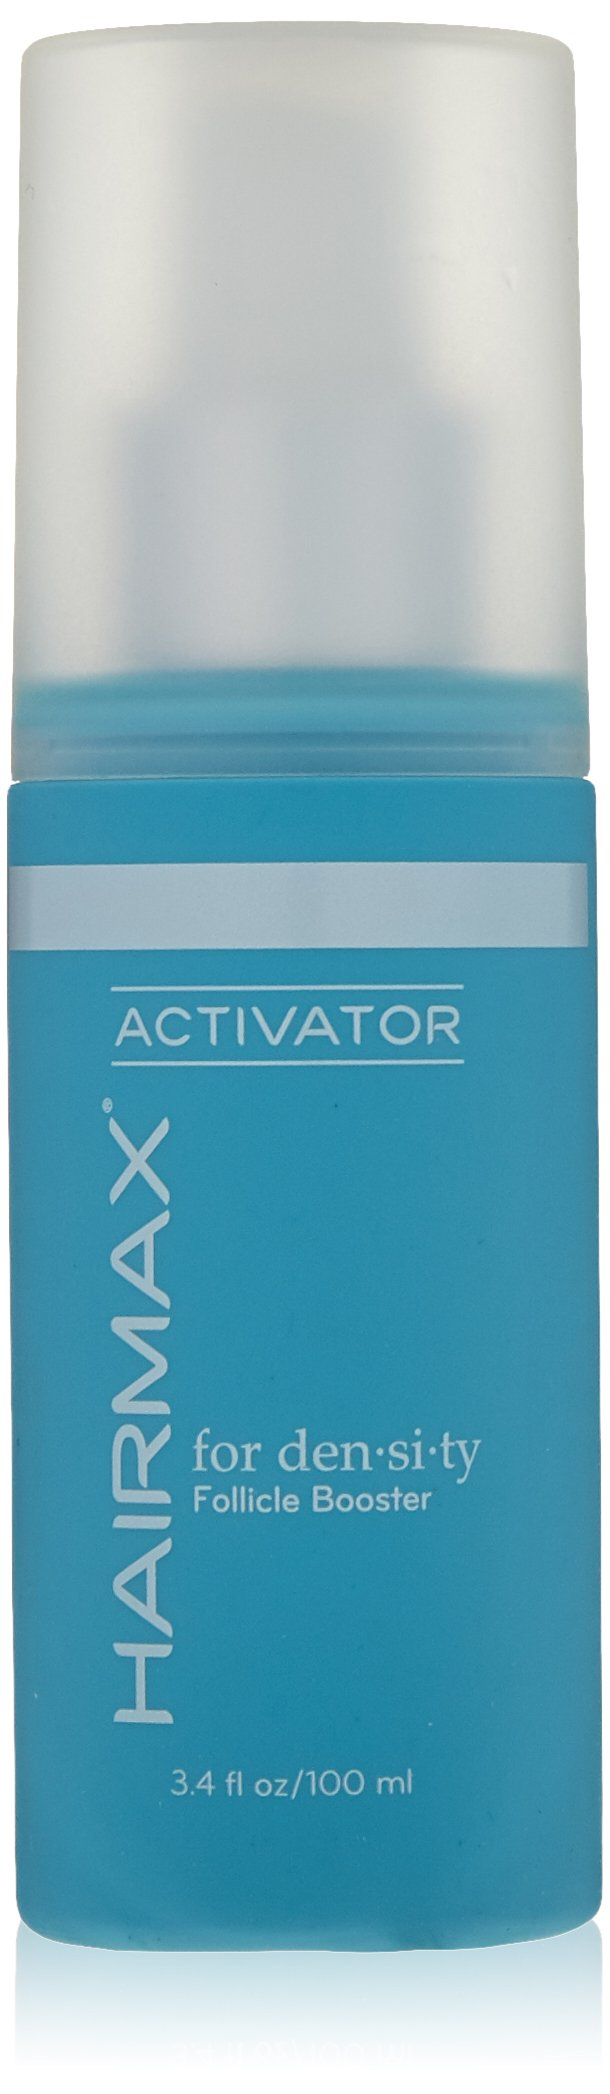 HairMax Density Activator, 3.4 oz.